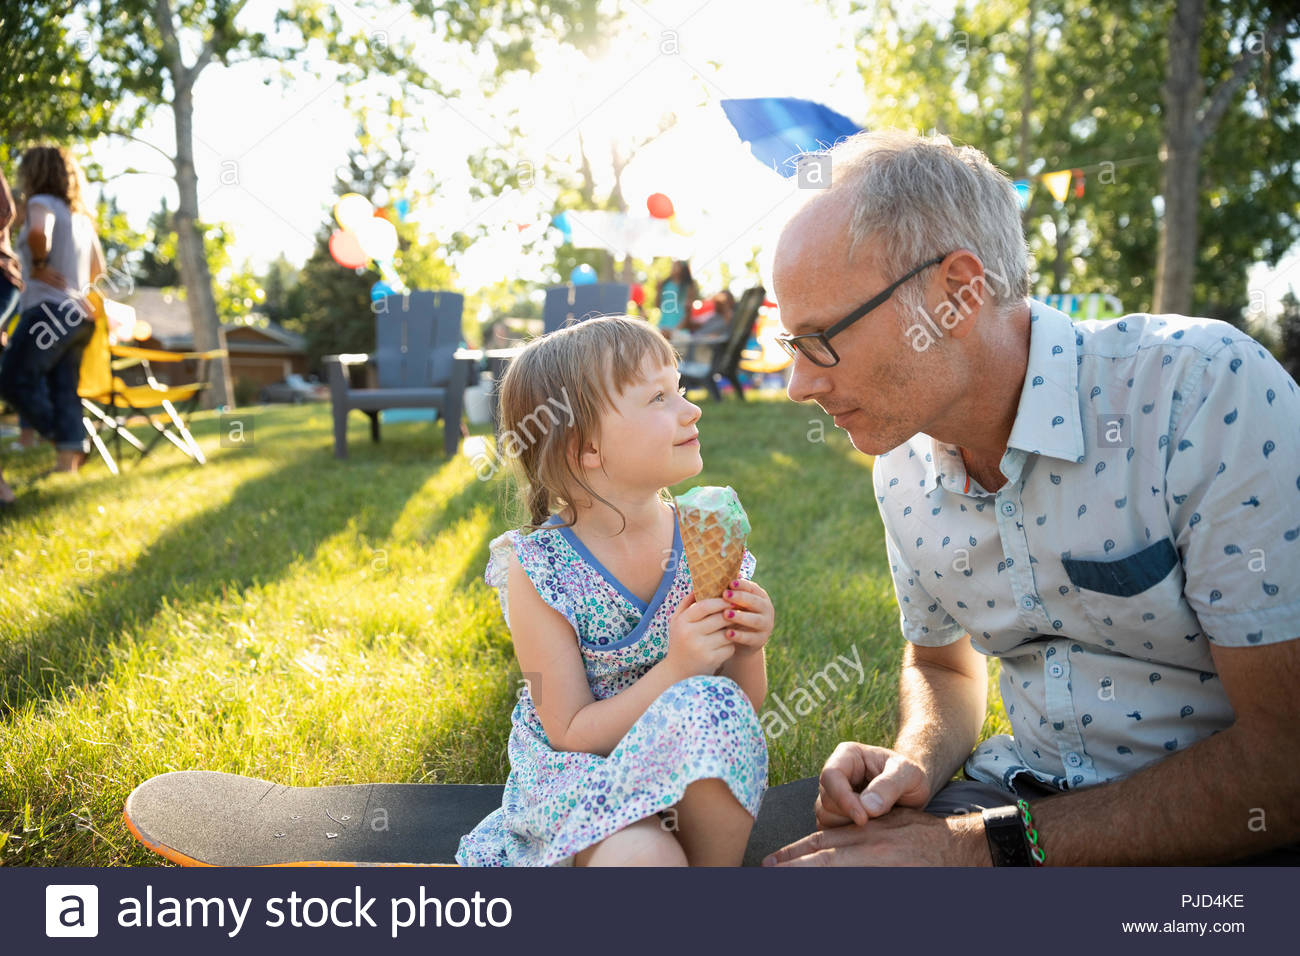 Father and daughter with ice cream cone at summer neighborhood block party in park - Stock Image